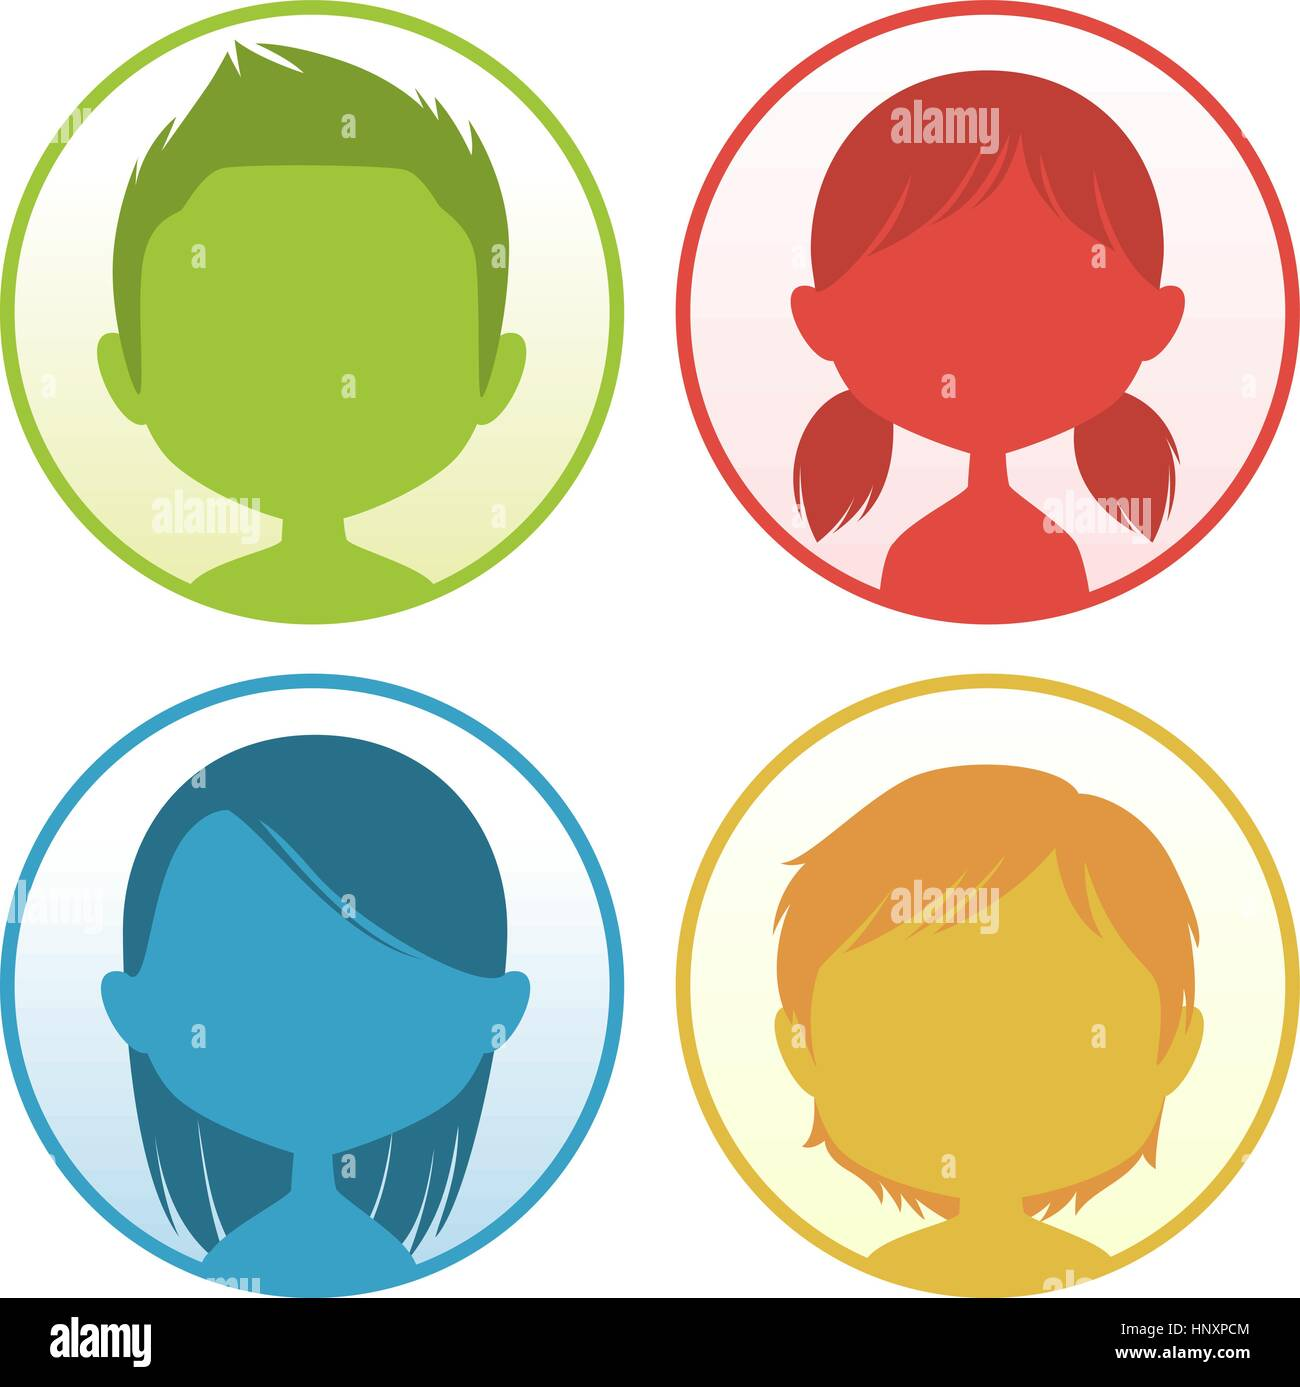 Head and Shoulder People Avatar Profile vector illustration. - Stock Vector